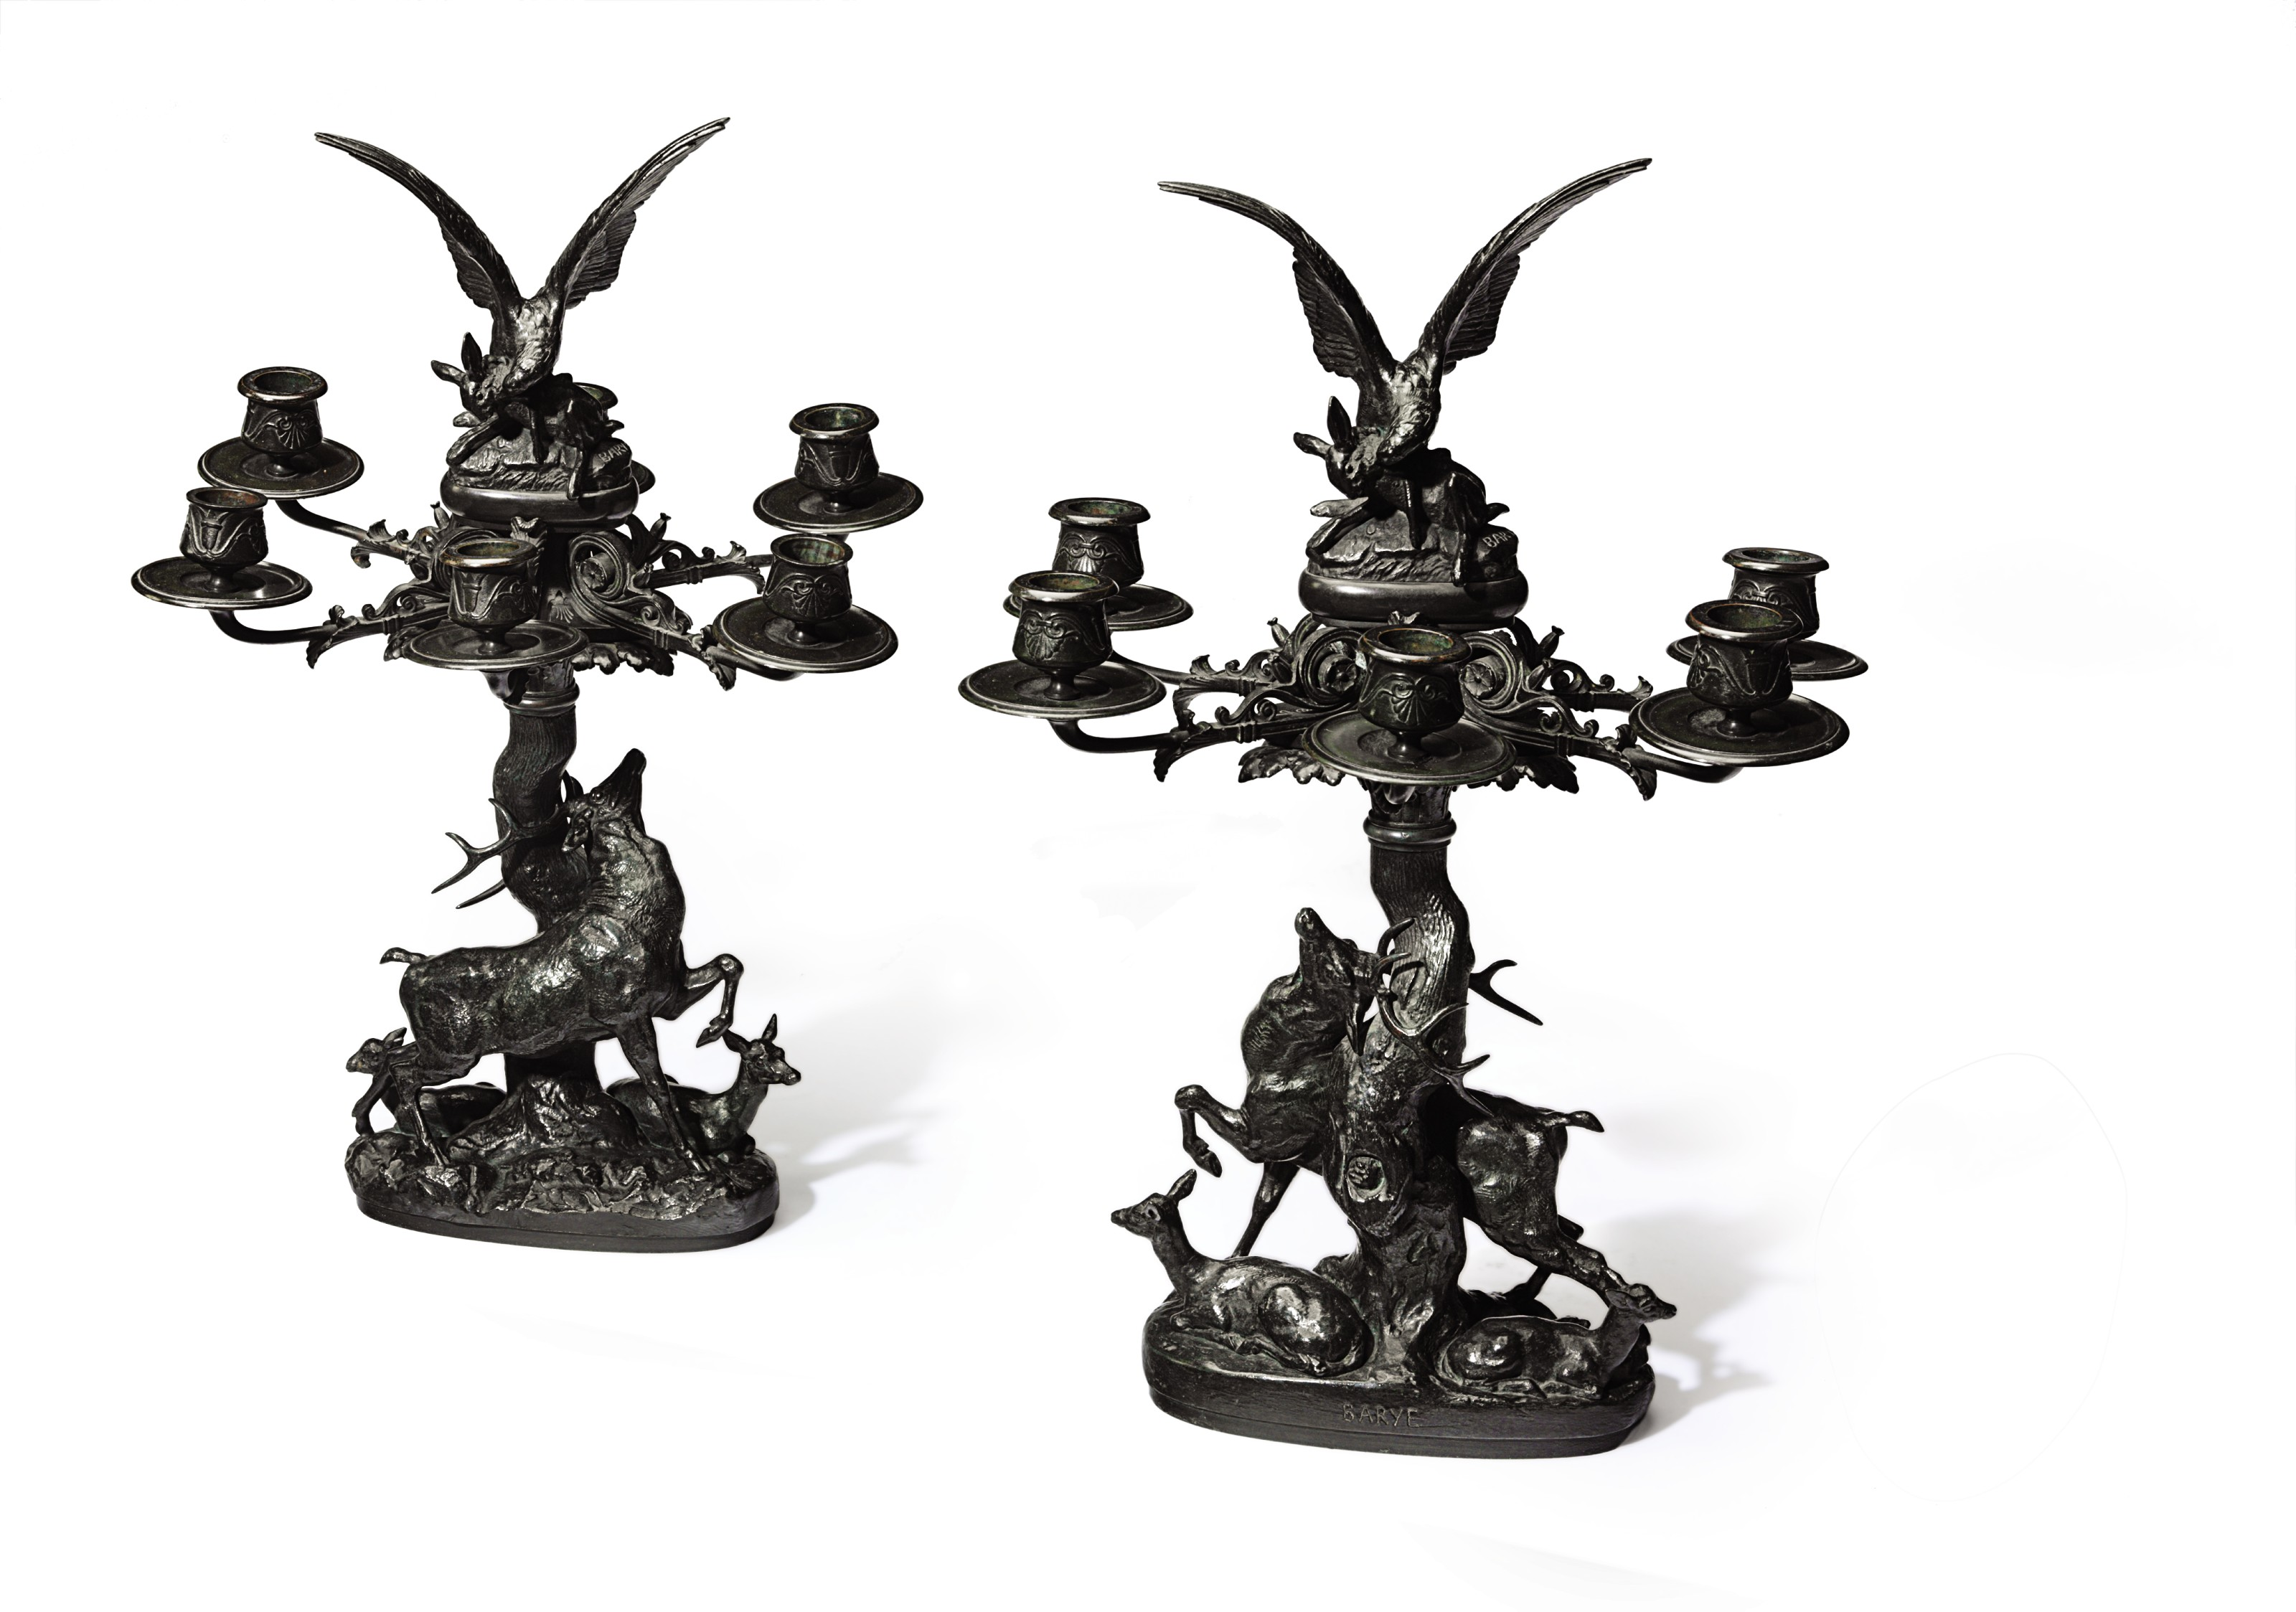 A PAIR OF FRENCH PATINATED BRONZE SIX-LIGHT CANDELABRA, TITLED 'CANDELABRES DECORES DE GROUPES D'ANIMAUX'